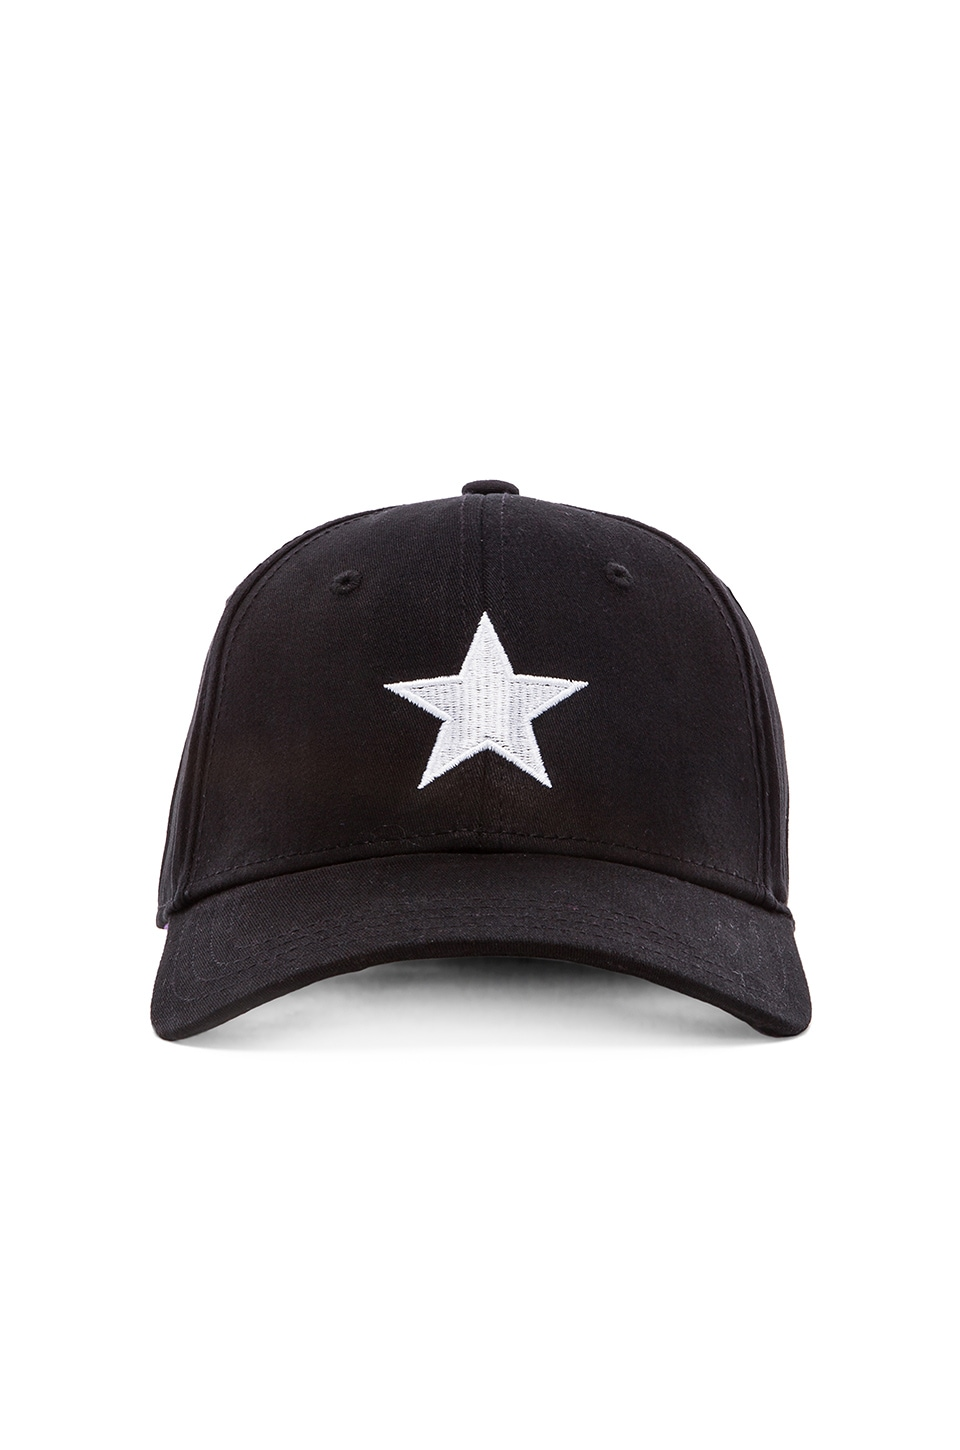 Lone Star Cap by Gents Co.